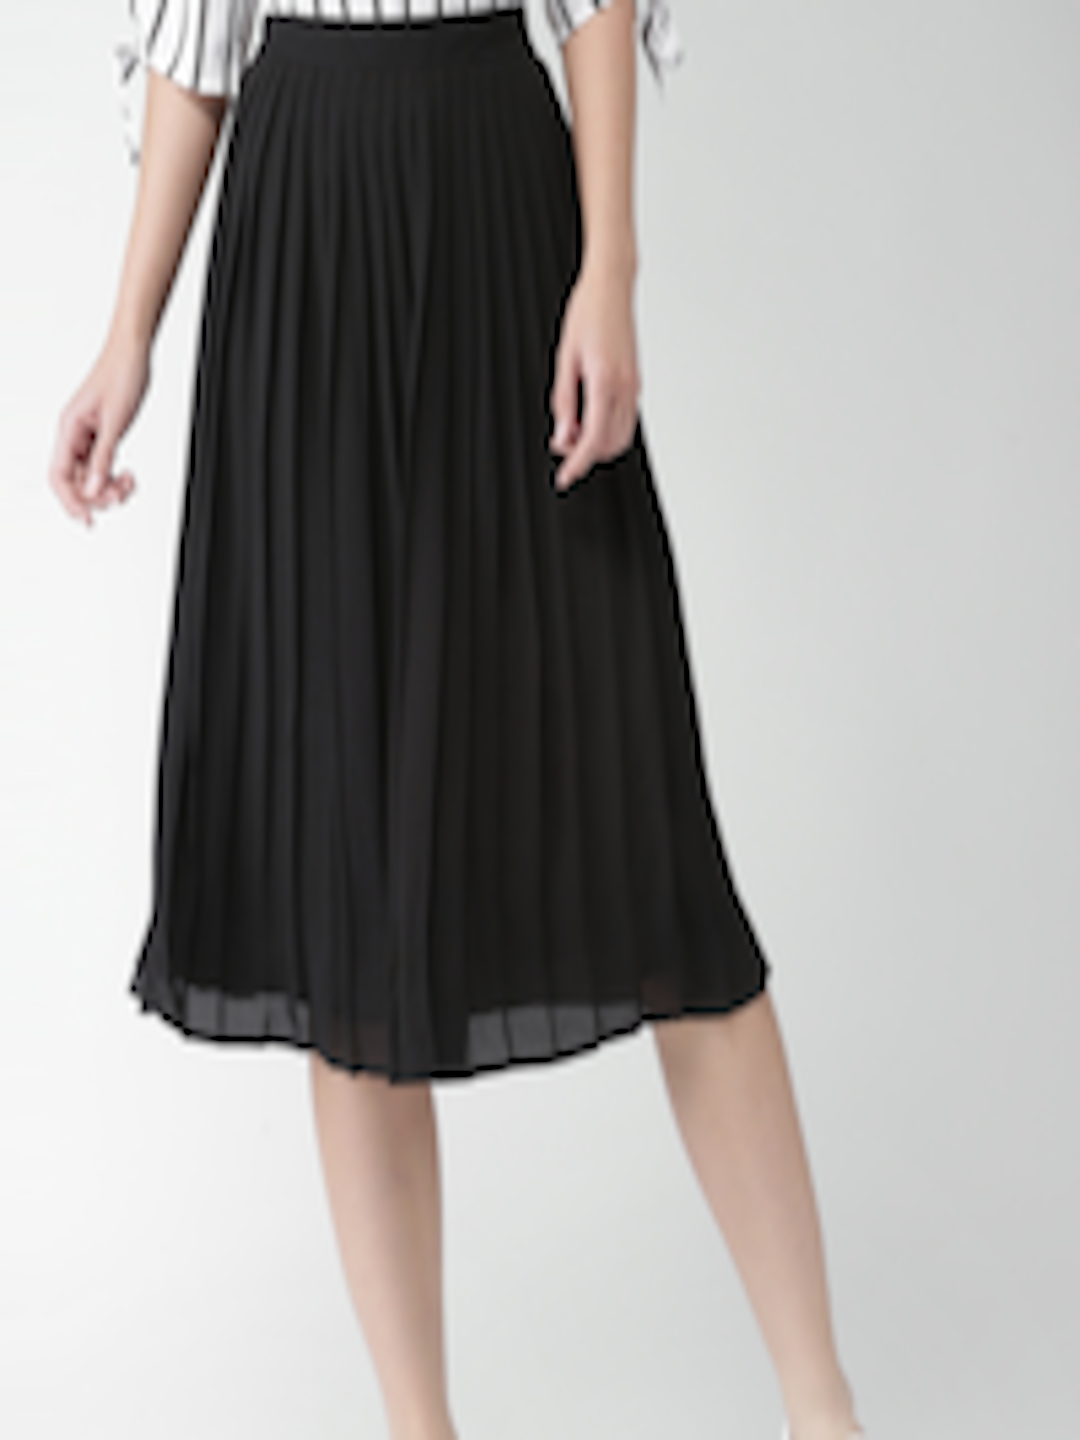 70b61b612c Buy FOREVER 21 Black Midi Flared Skirt With Accordion Pleats - Skirts for  Women 1906395